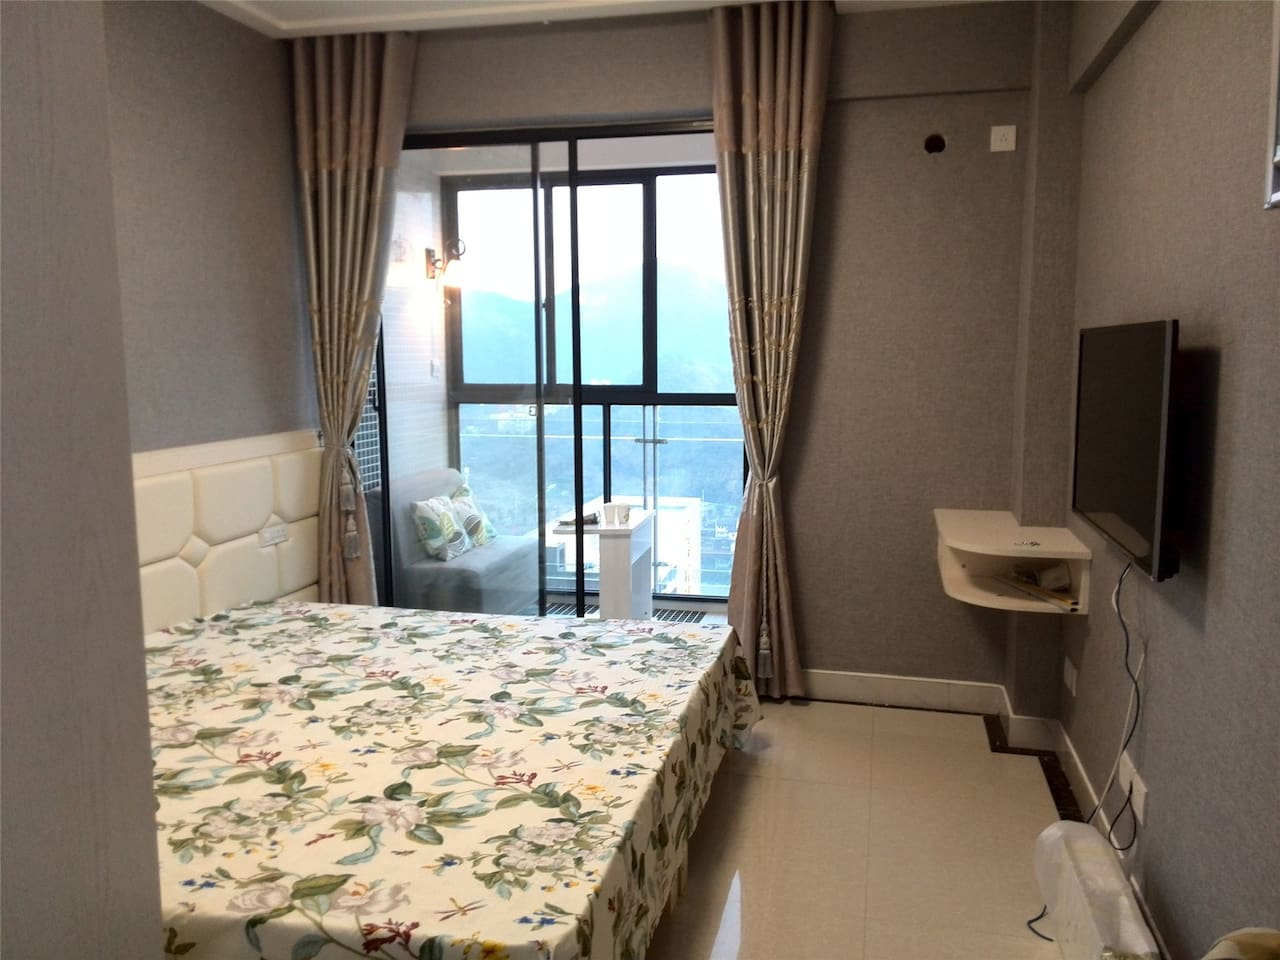 超级大床,Superbig bed,2Mx2M, 绝美江景柔软入心,Fabulous river view touches your soul